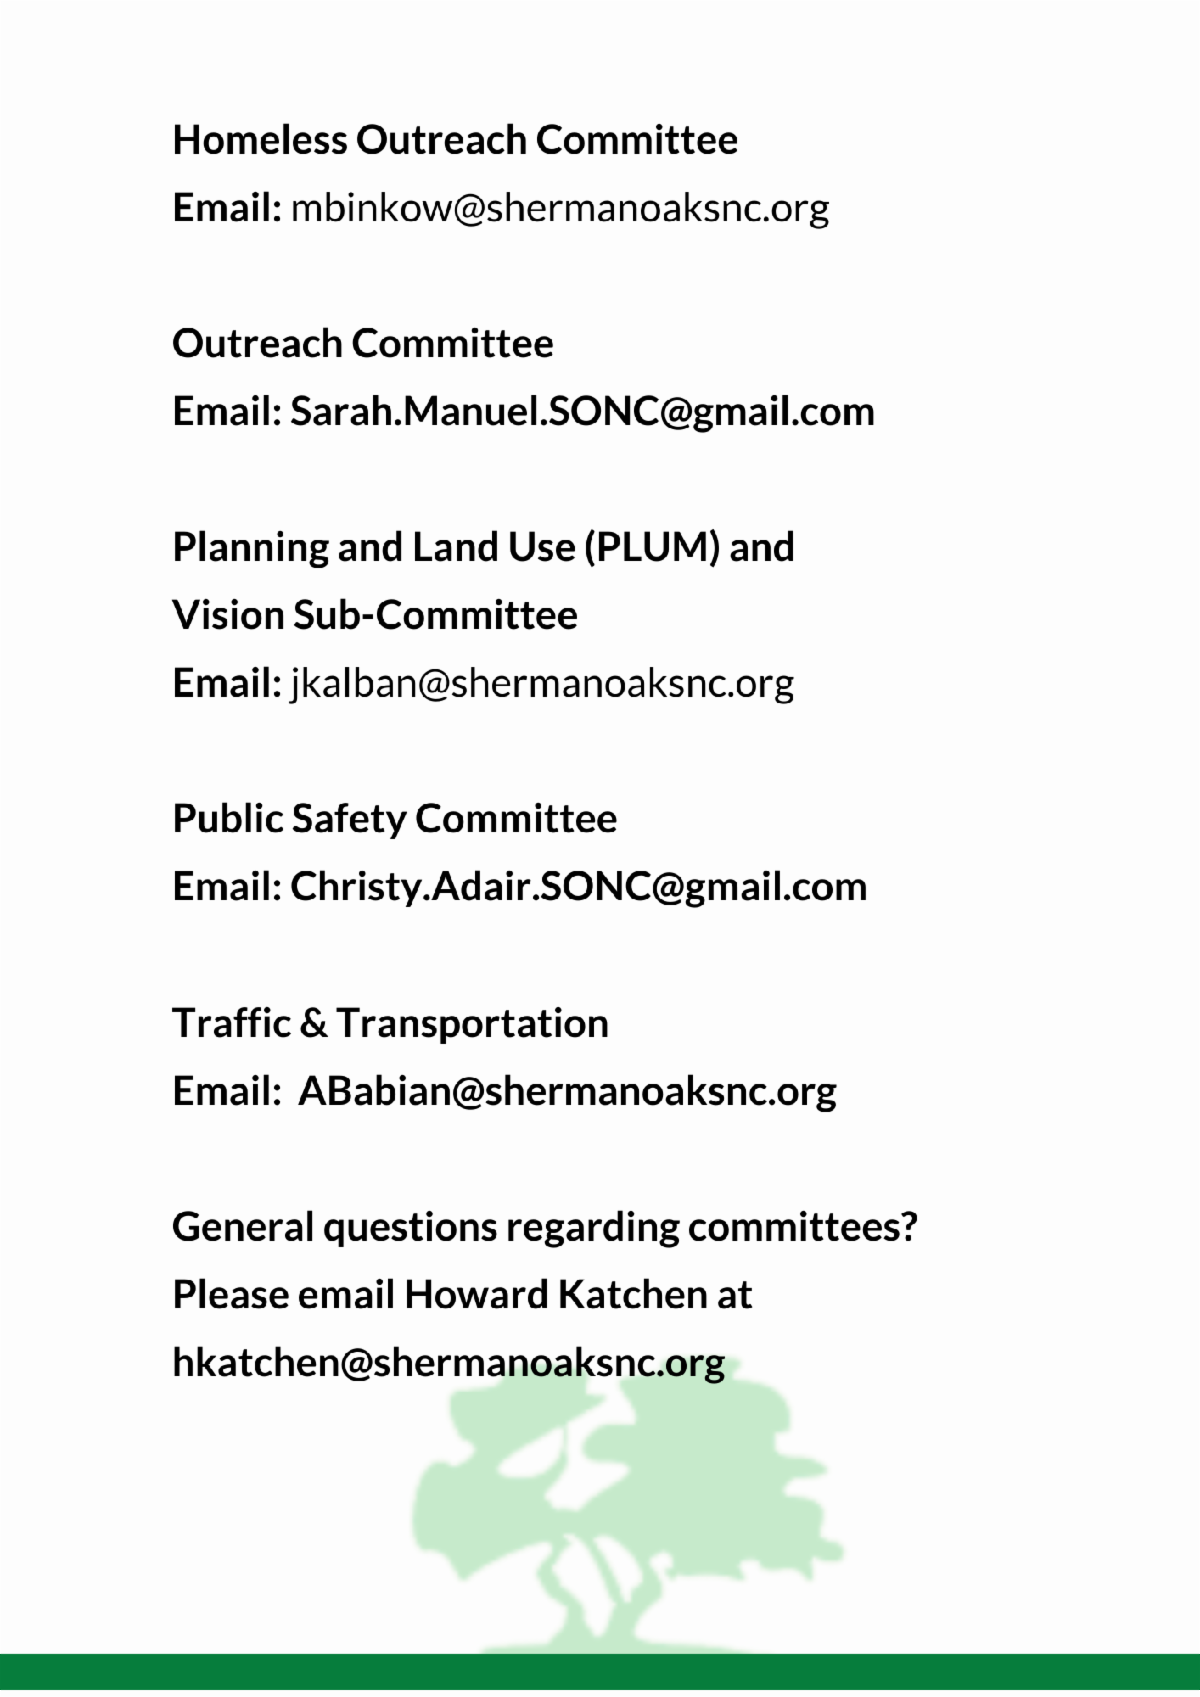 Homeless Outreach Committee mbinkow at shermanoaksnc.org Outreach Committee Sarah.Manuel.SONC at gmail.com Planning and Land Use and  Vision Sub Committee jkalban at shermanoaksnc.org Public Safety Committee Christy.Adair.SONC at gmail.com